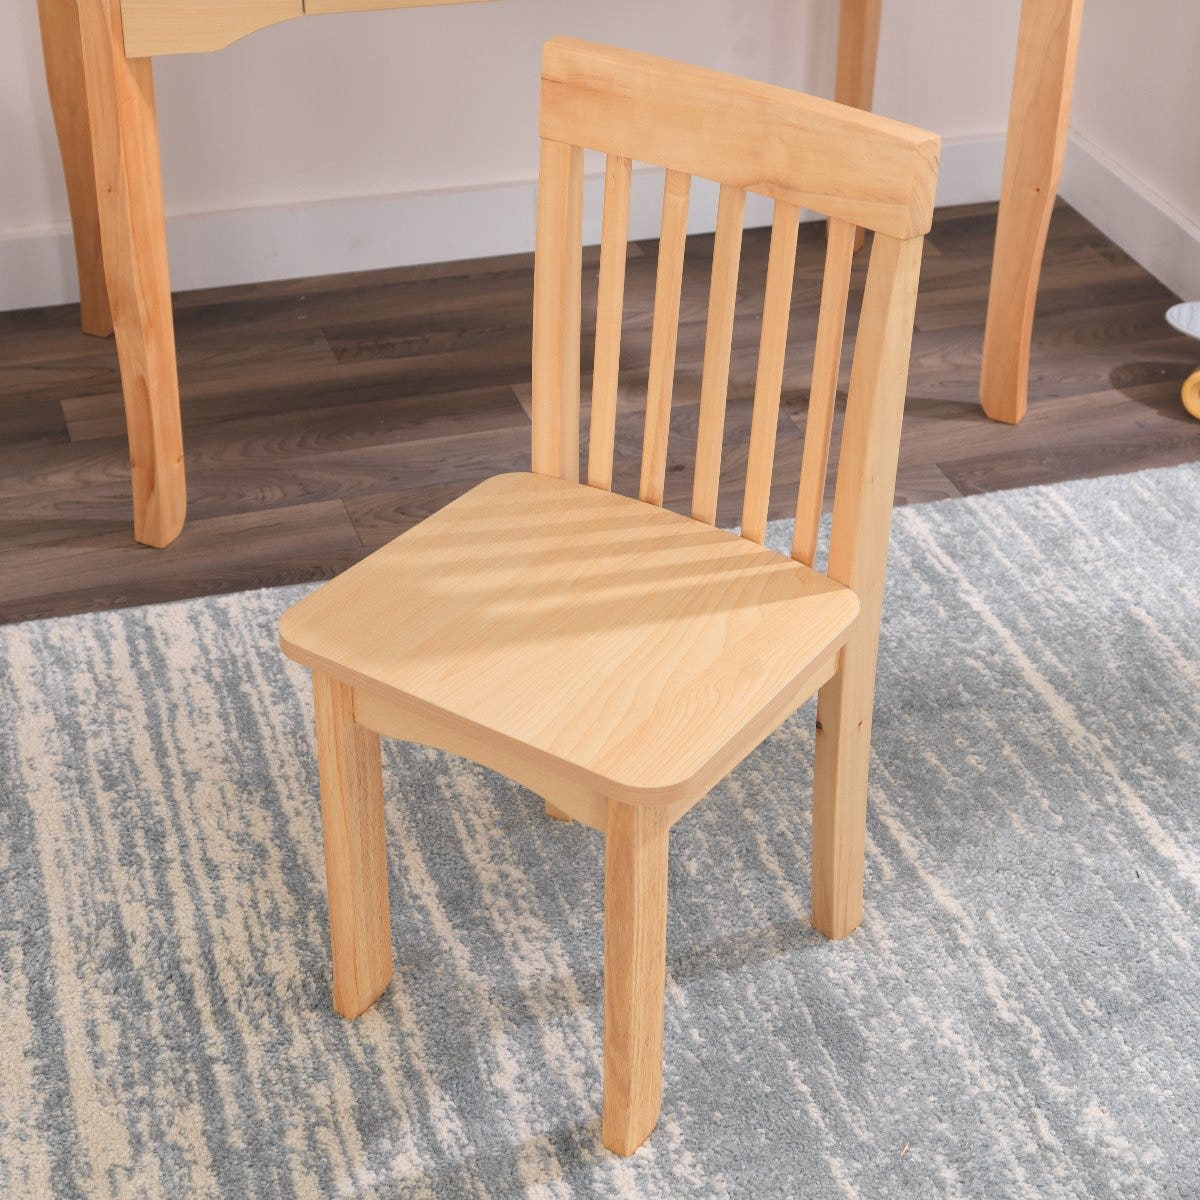 Chair included